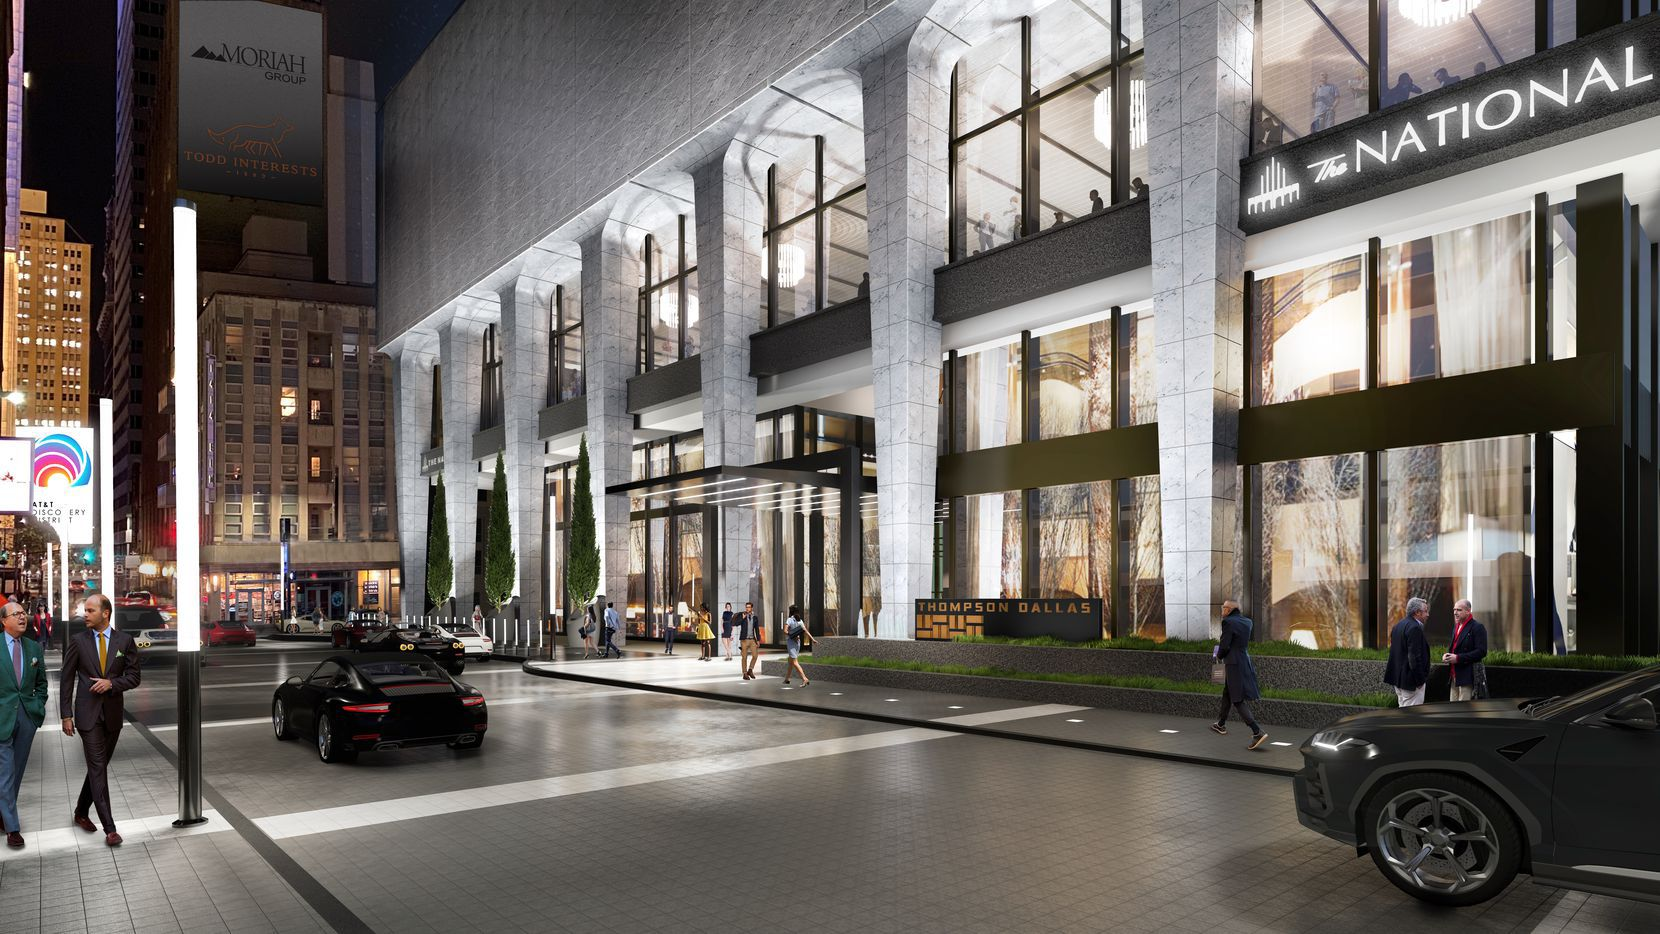 The National at 1401 Elm St. includes the Thompson Dallas hotel, apartments, retail and office space.